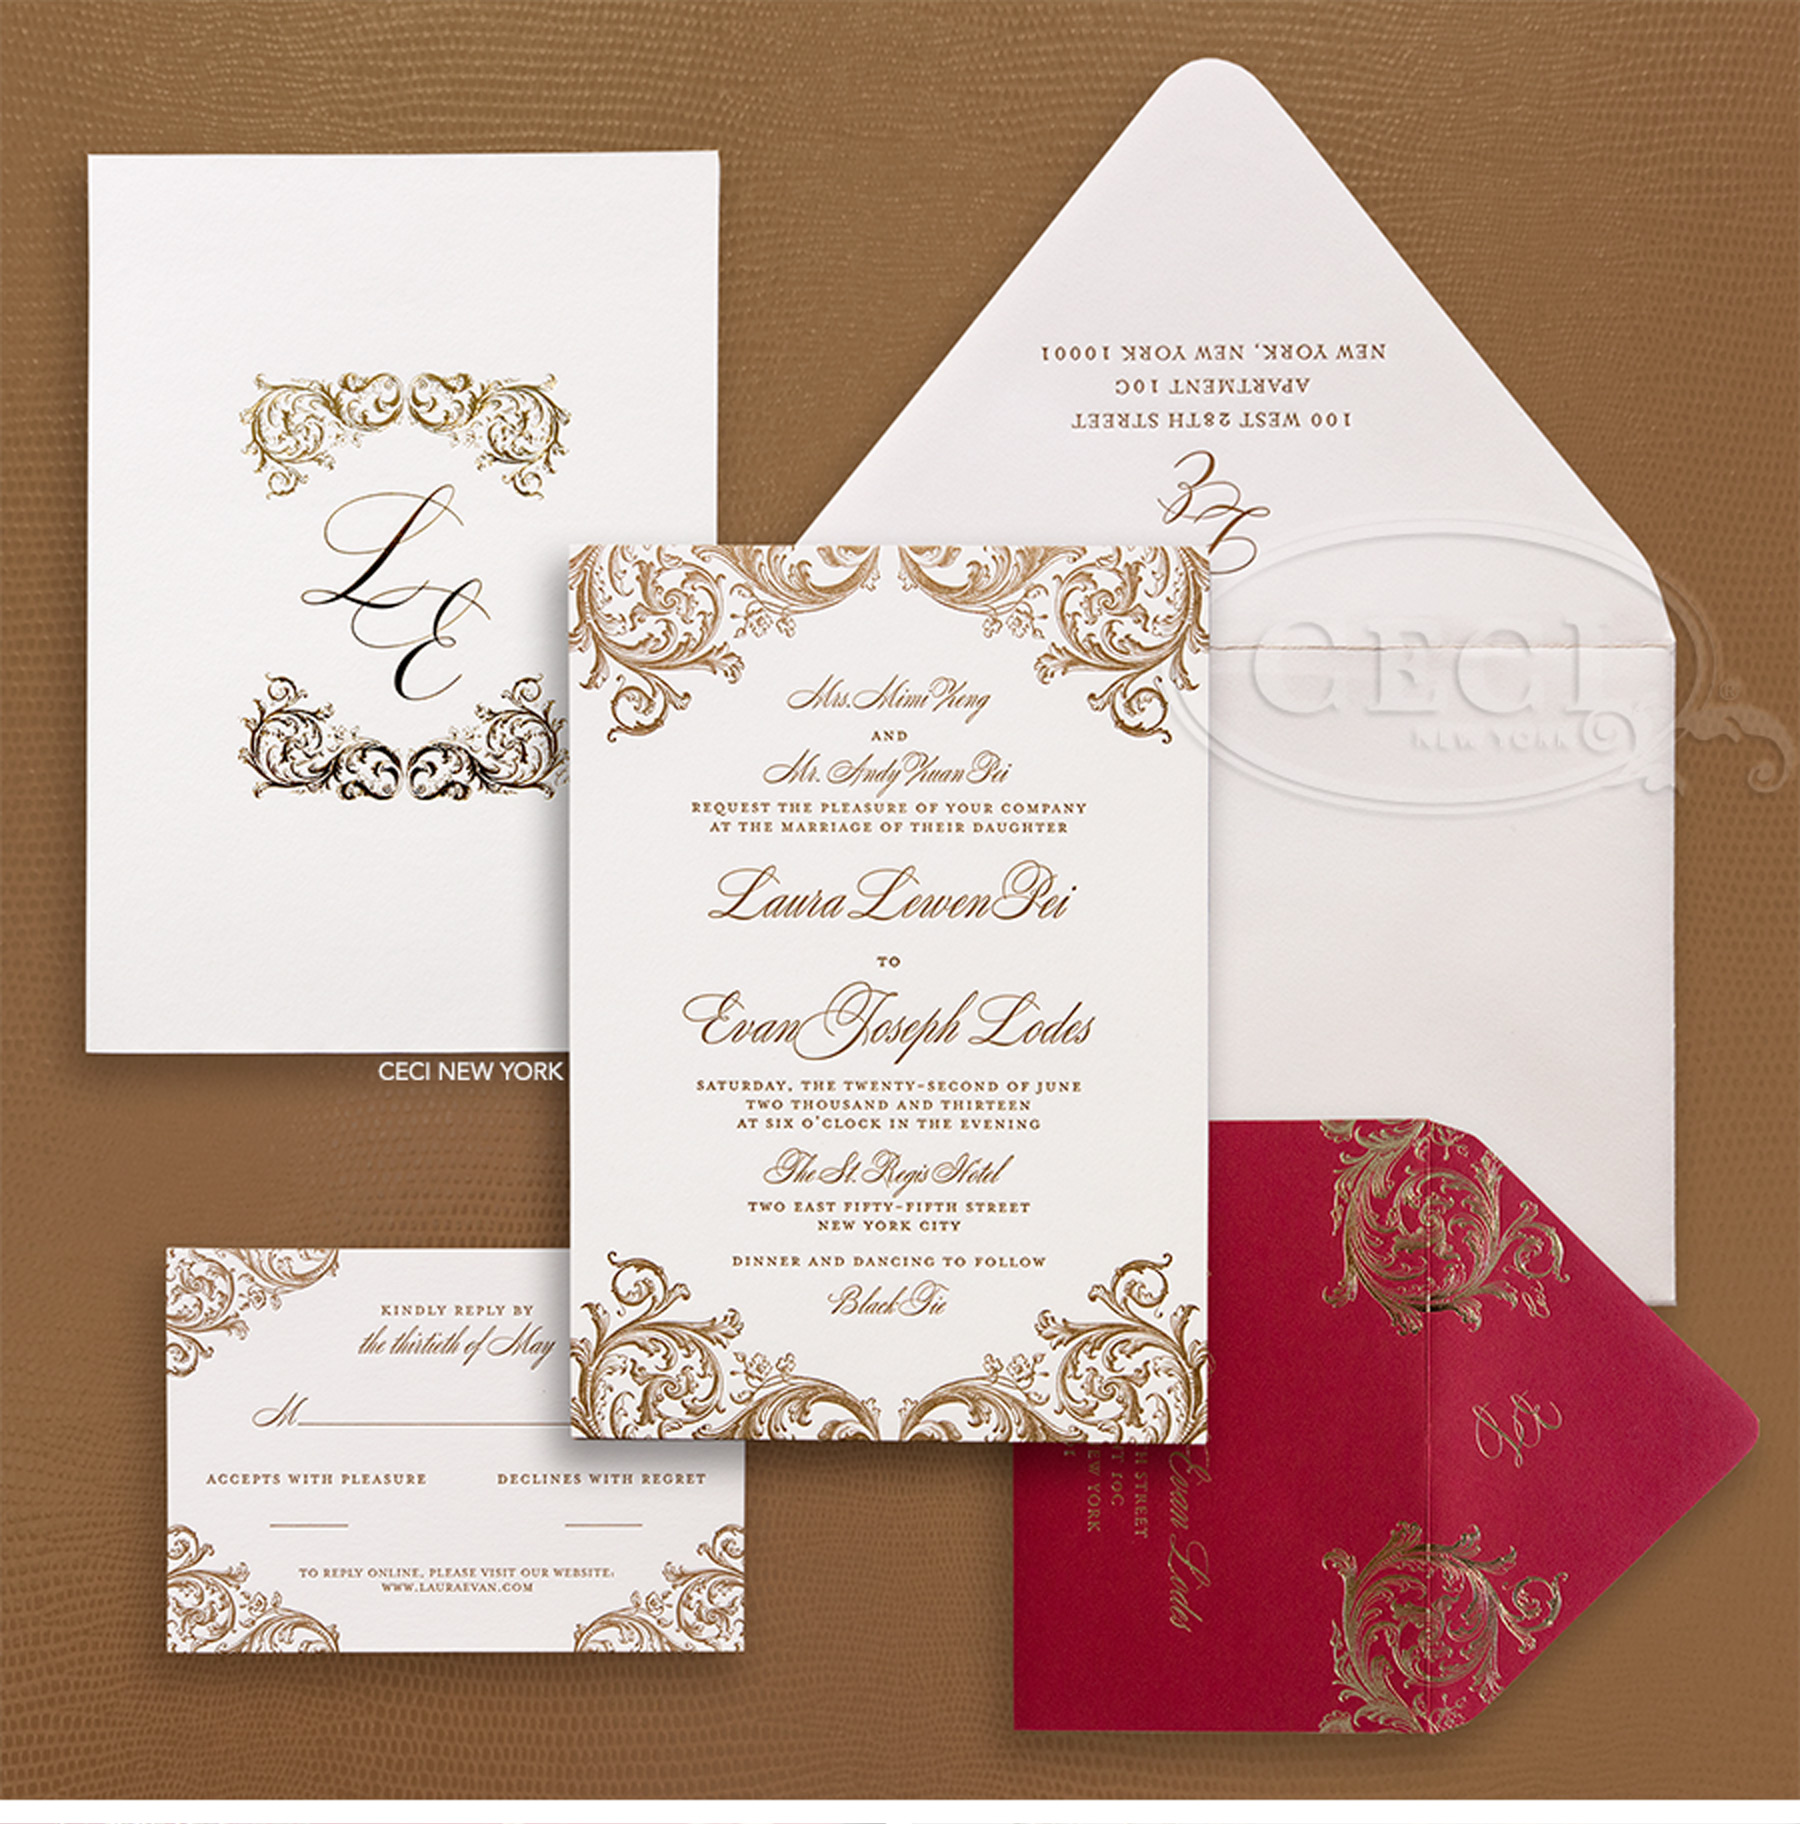 Luxury Wedding Invitations by Ceci New York - Our Muse - Ornate Red and Gold Wedding at the St. Regis - Be inspired by Laura & Evan's ornate red and gold wedding at the St. Regis in New York City. - ceci new york, wedding invitation, luxury invitations, couture, letterpress printing, custom design, ornate invitation, gold foil, monogram, st. regis, new york city